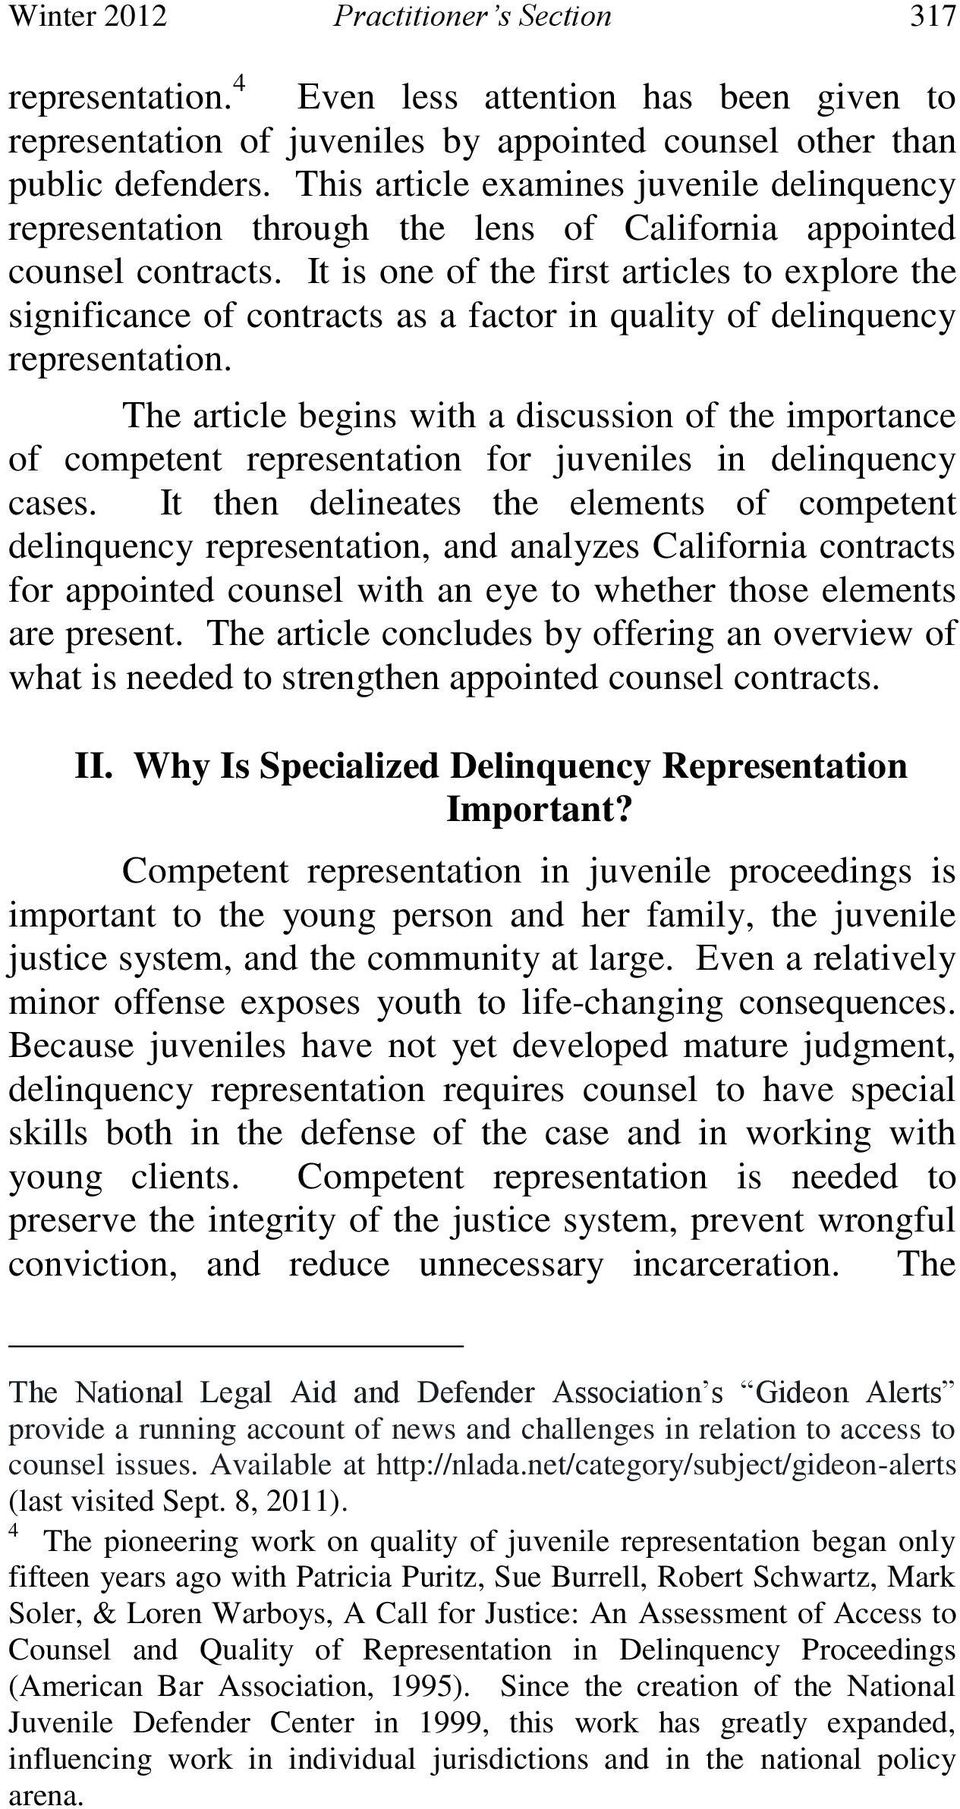 It is one of the first articles to explore the significance of contracts as a factor in quality of delinquency representation.